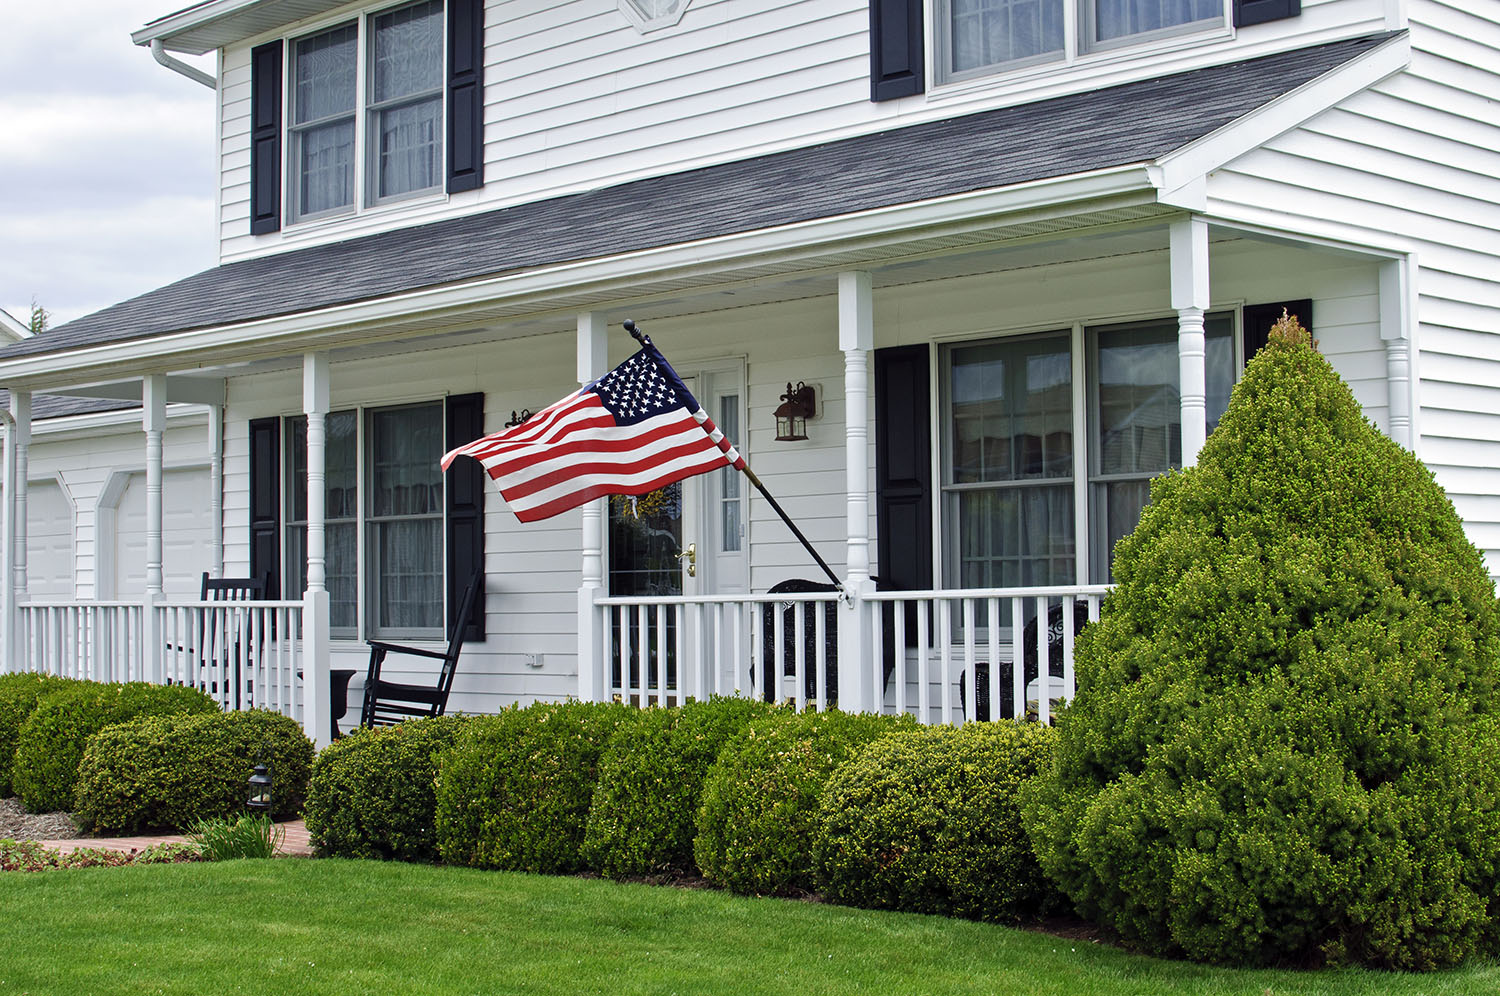 American Flag flying in front of house